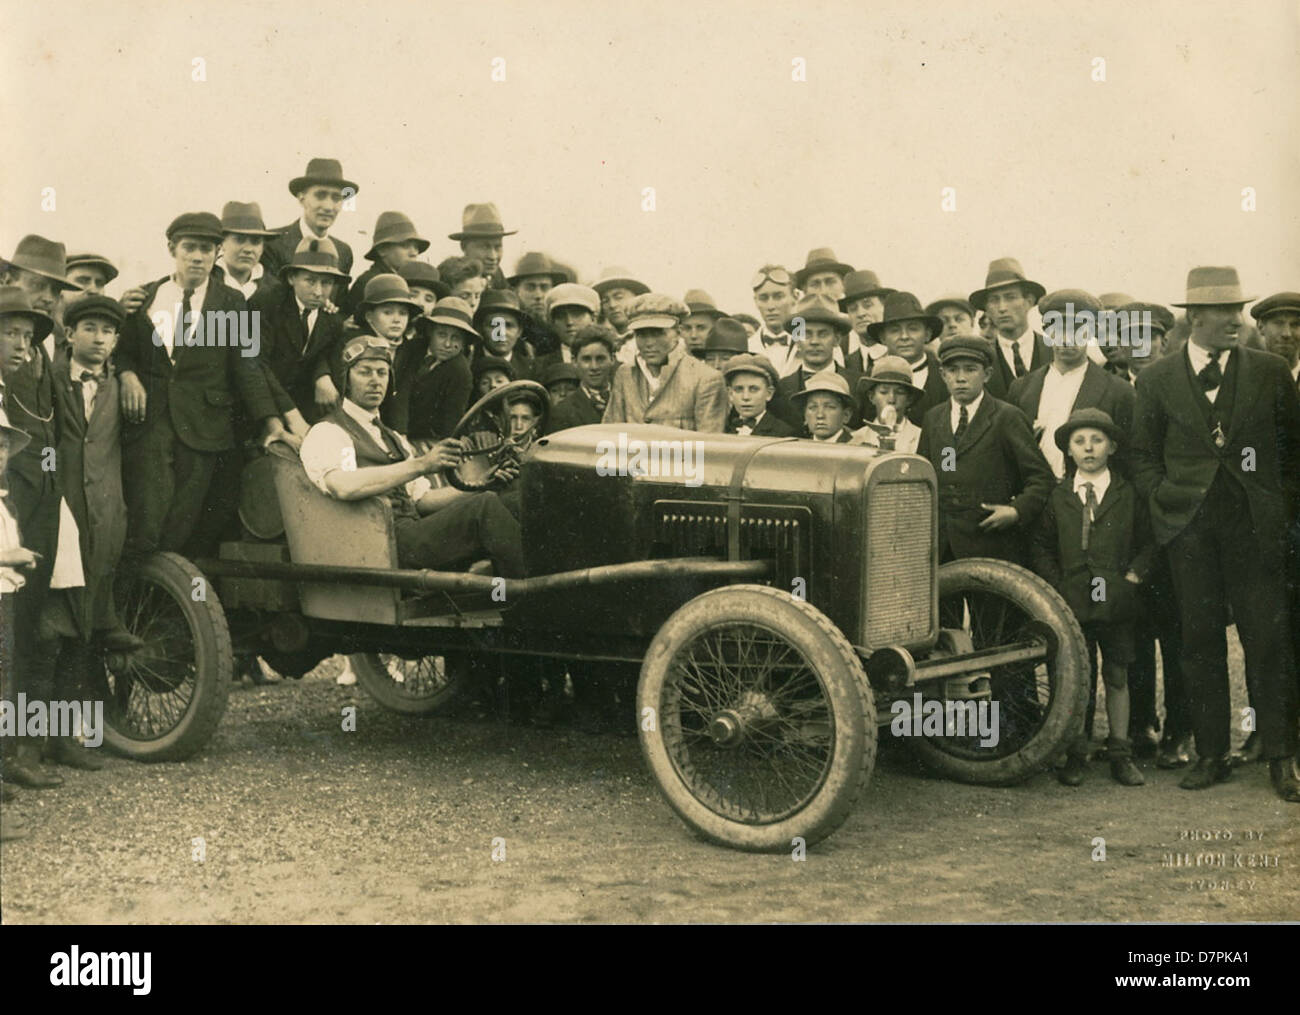 Man seated in a modified Overland racing car surrounded by crowd - Stock Image